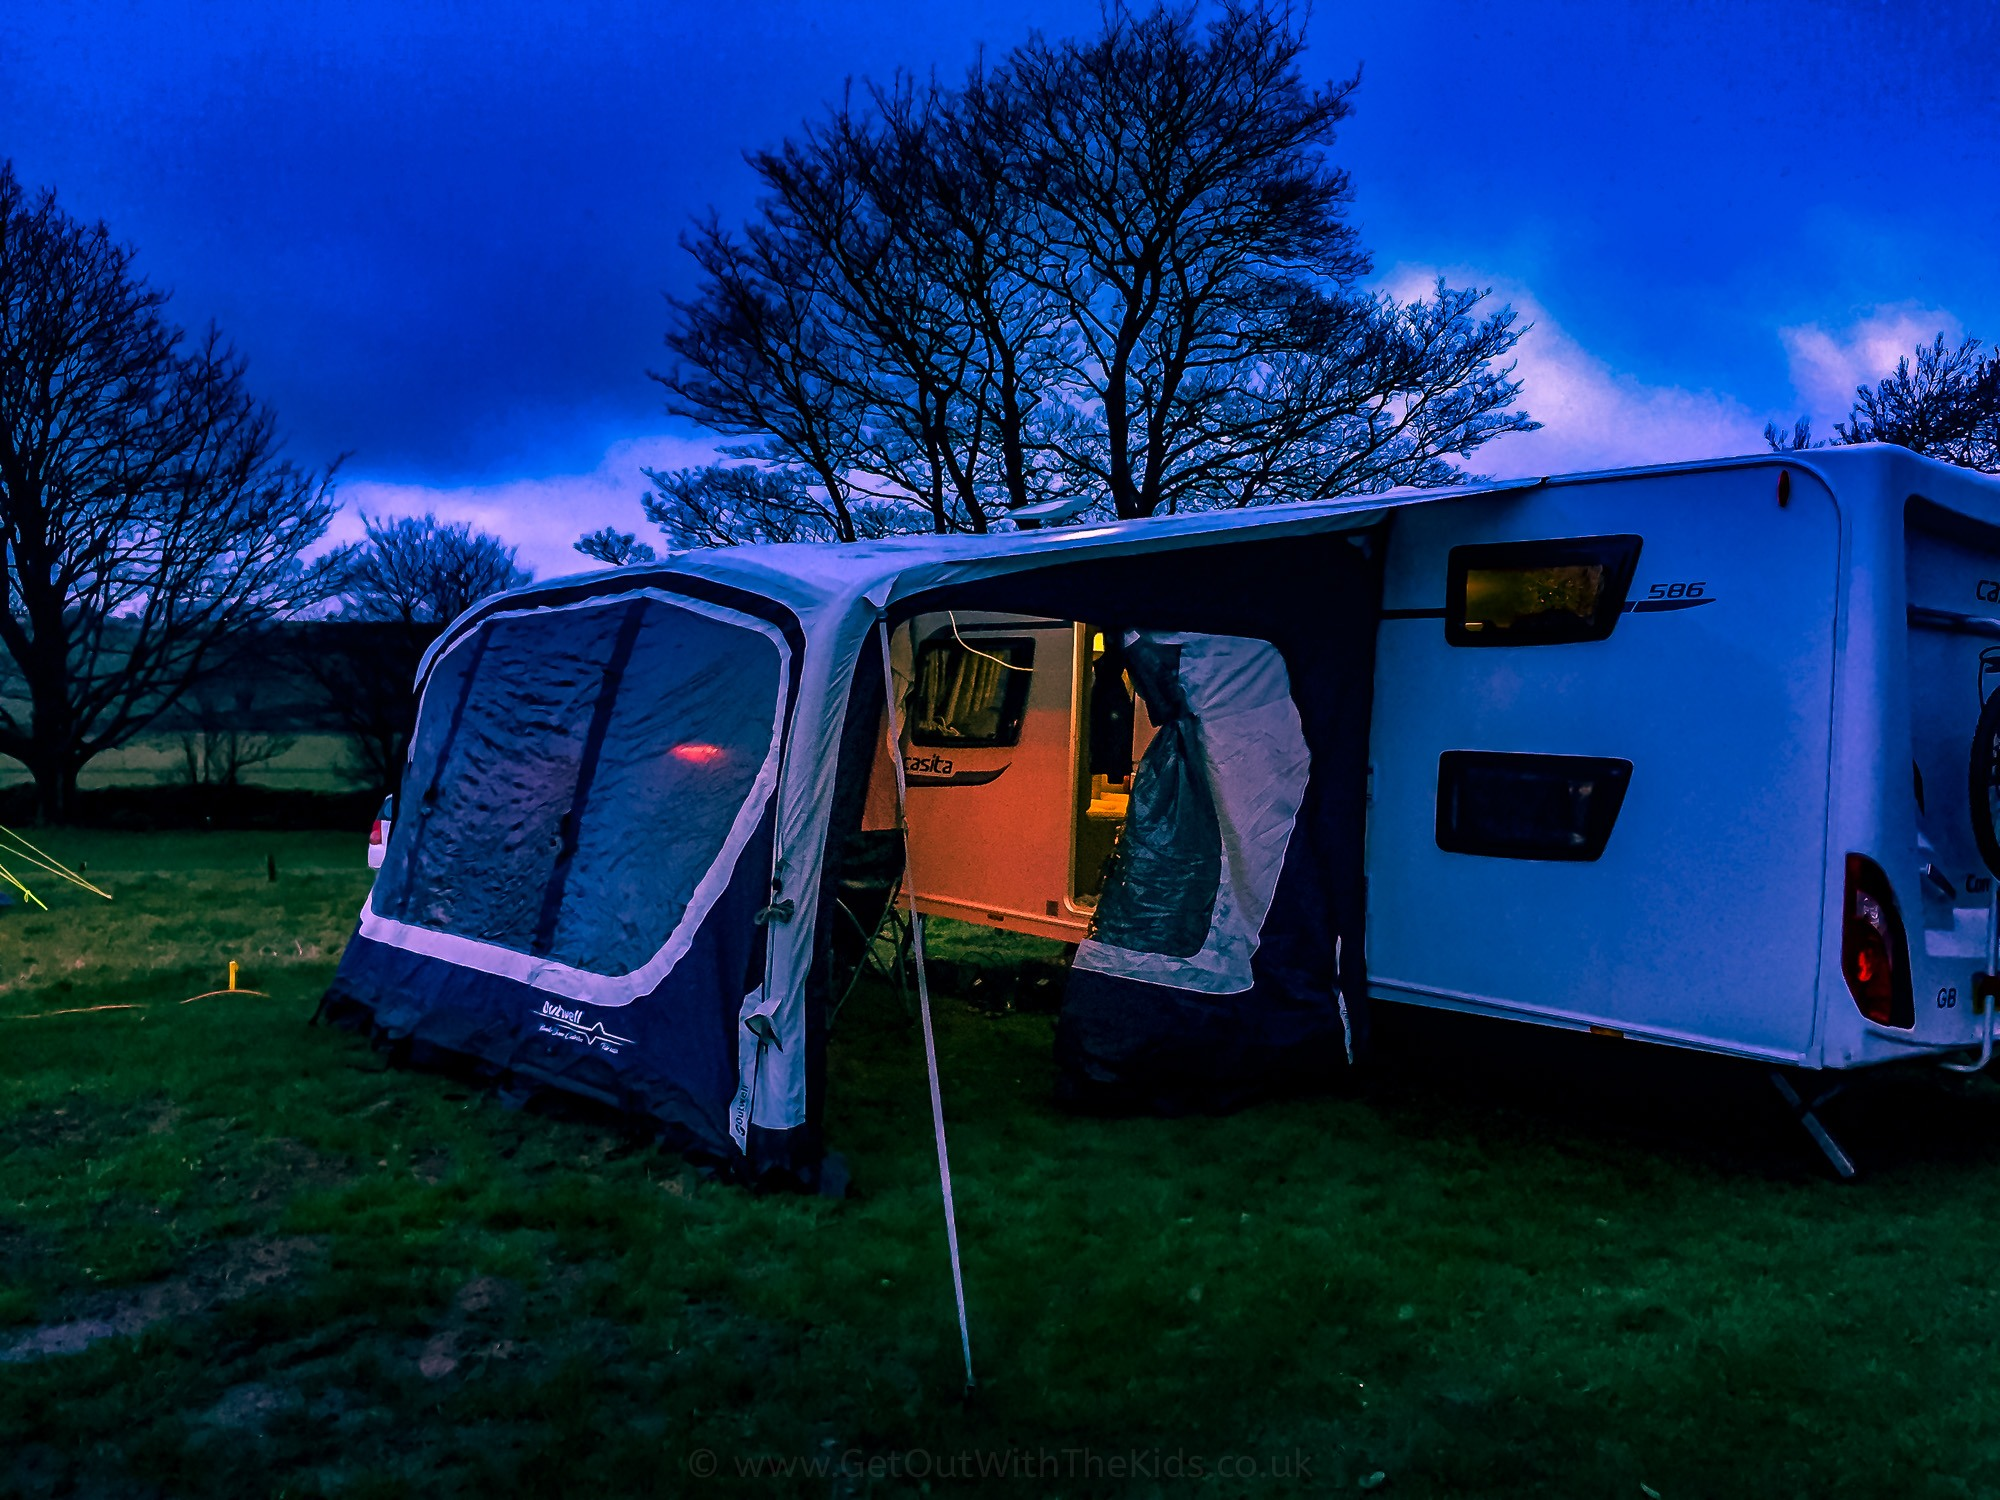 Warming up the caravan awning